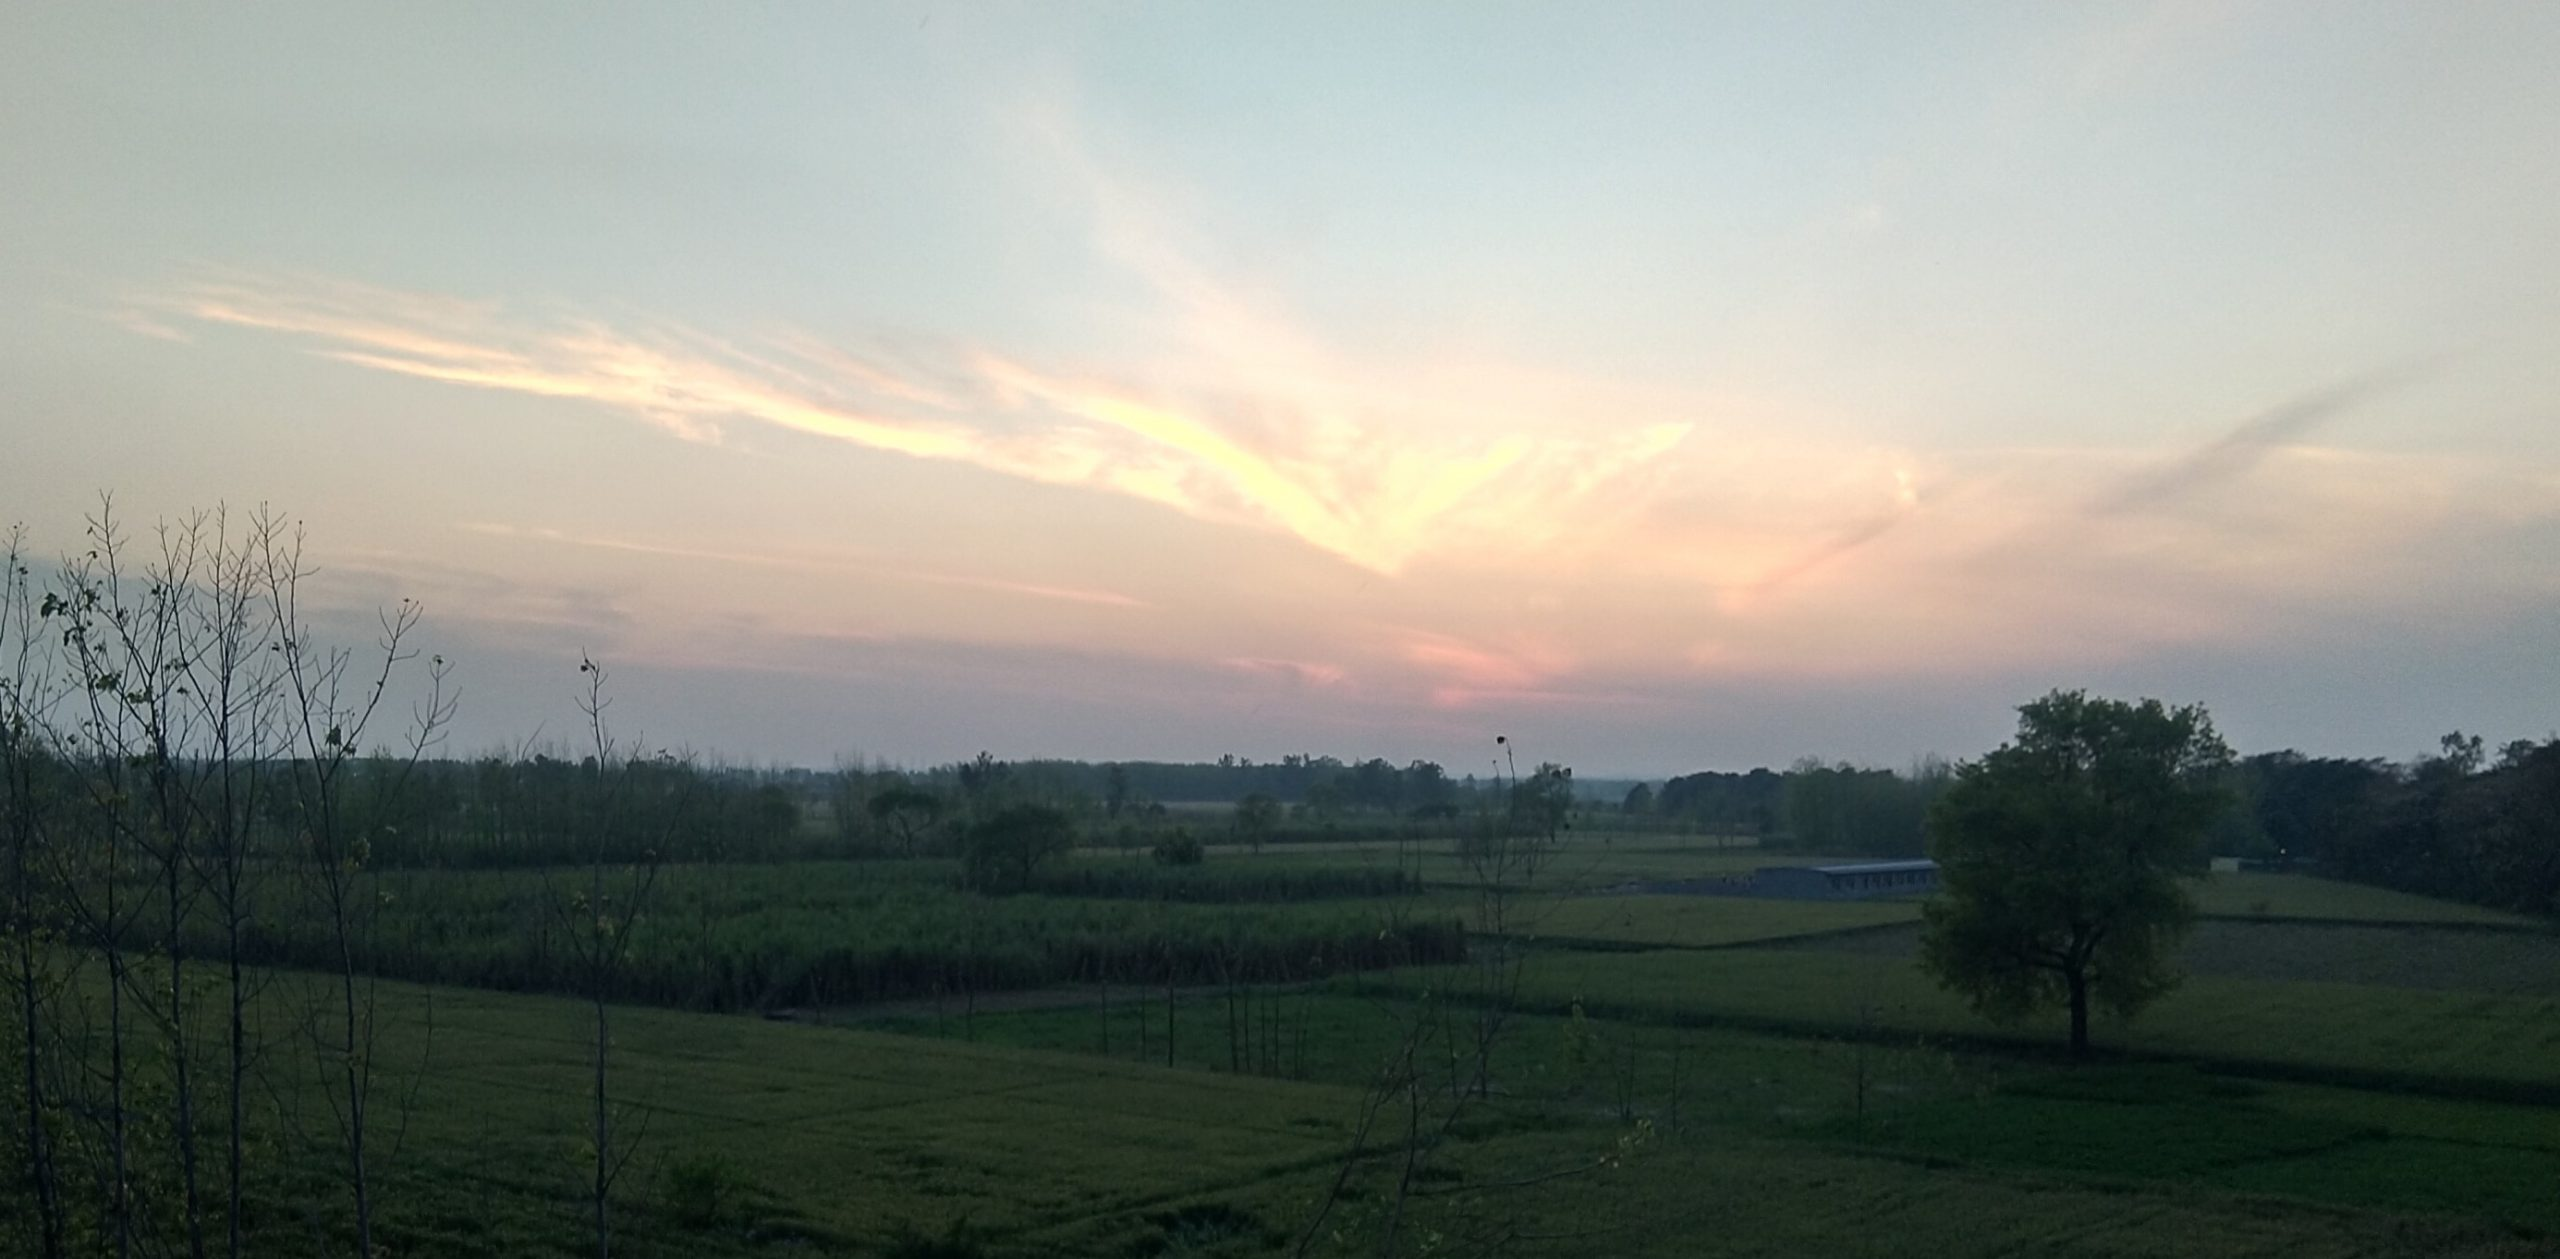 Sunset Scenery in the Farm